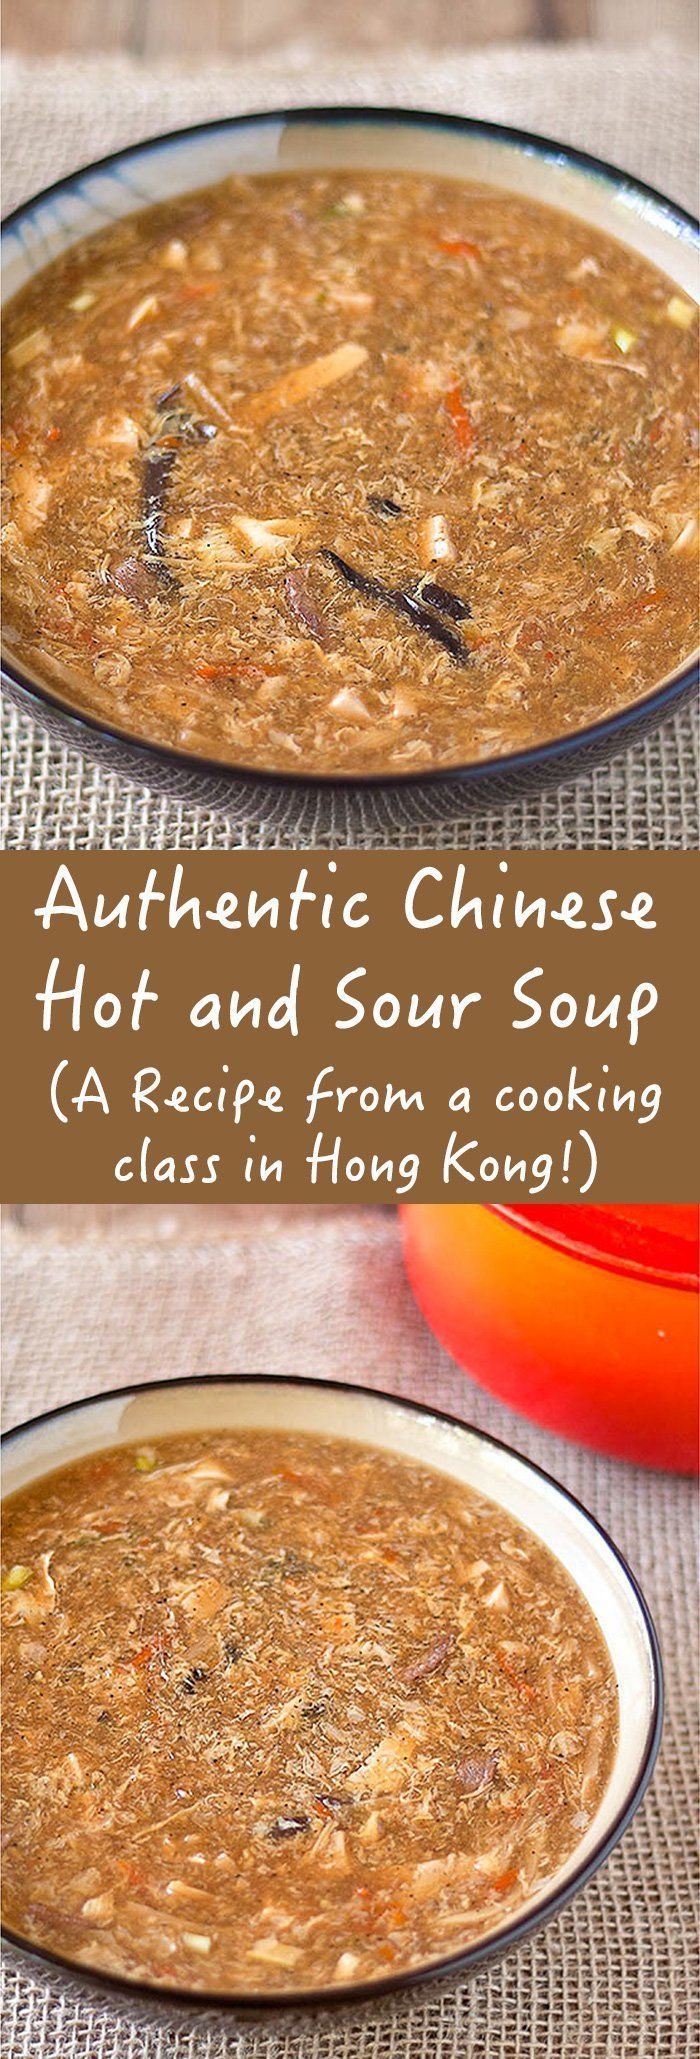 Authentic Hot and Sour Soup - Hot & Sour Soup can be a fickle thing, but not this version. The recipe from a cooking class in Hong Kong, this soup is a keeper.